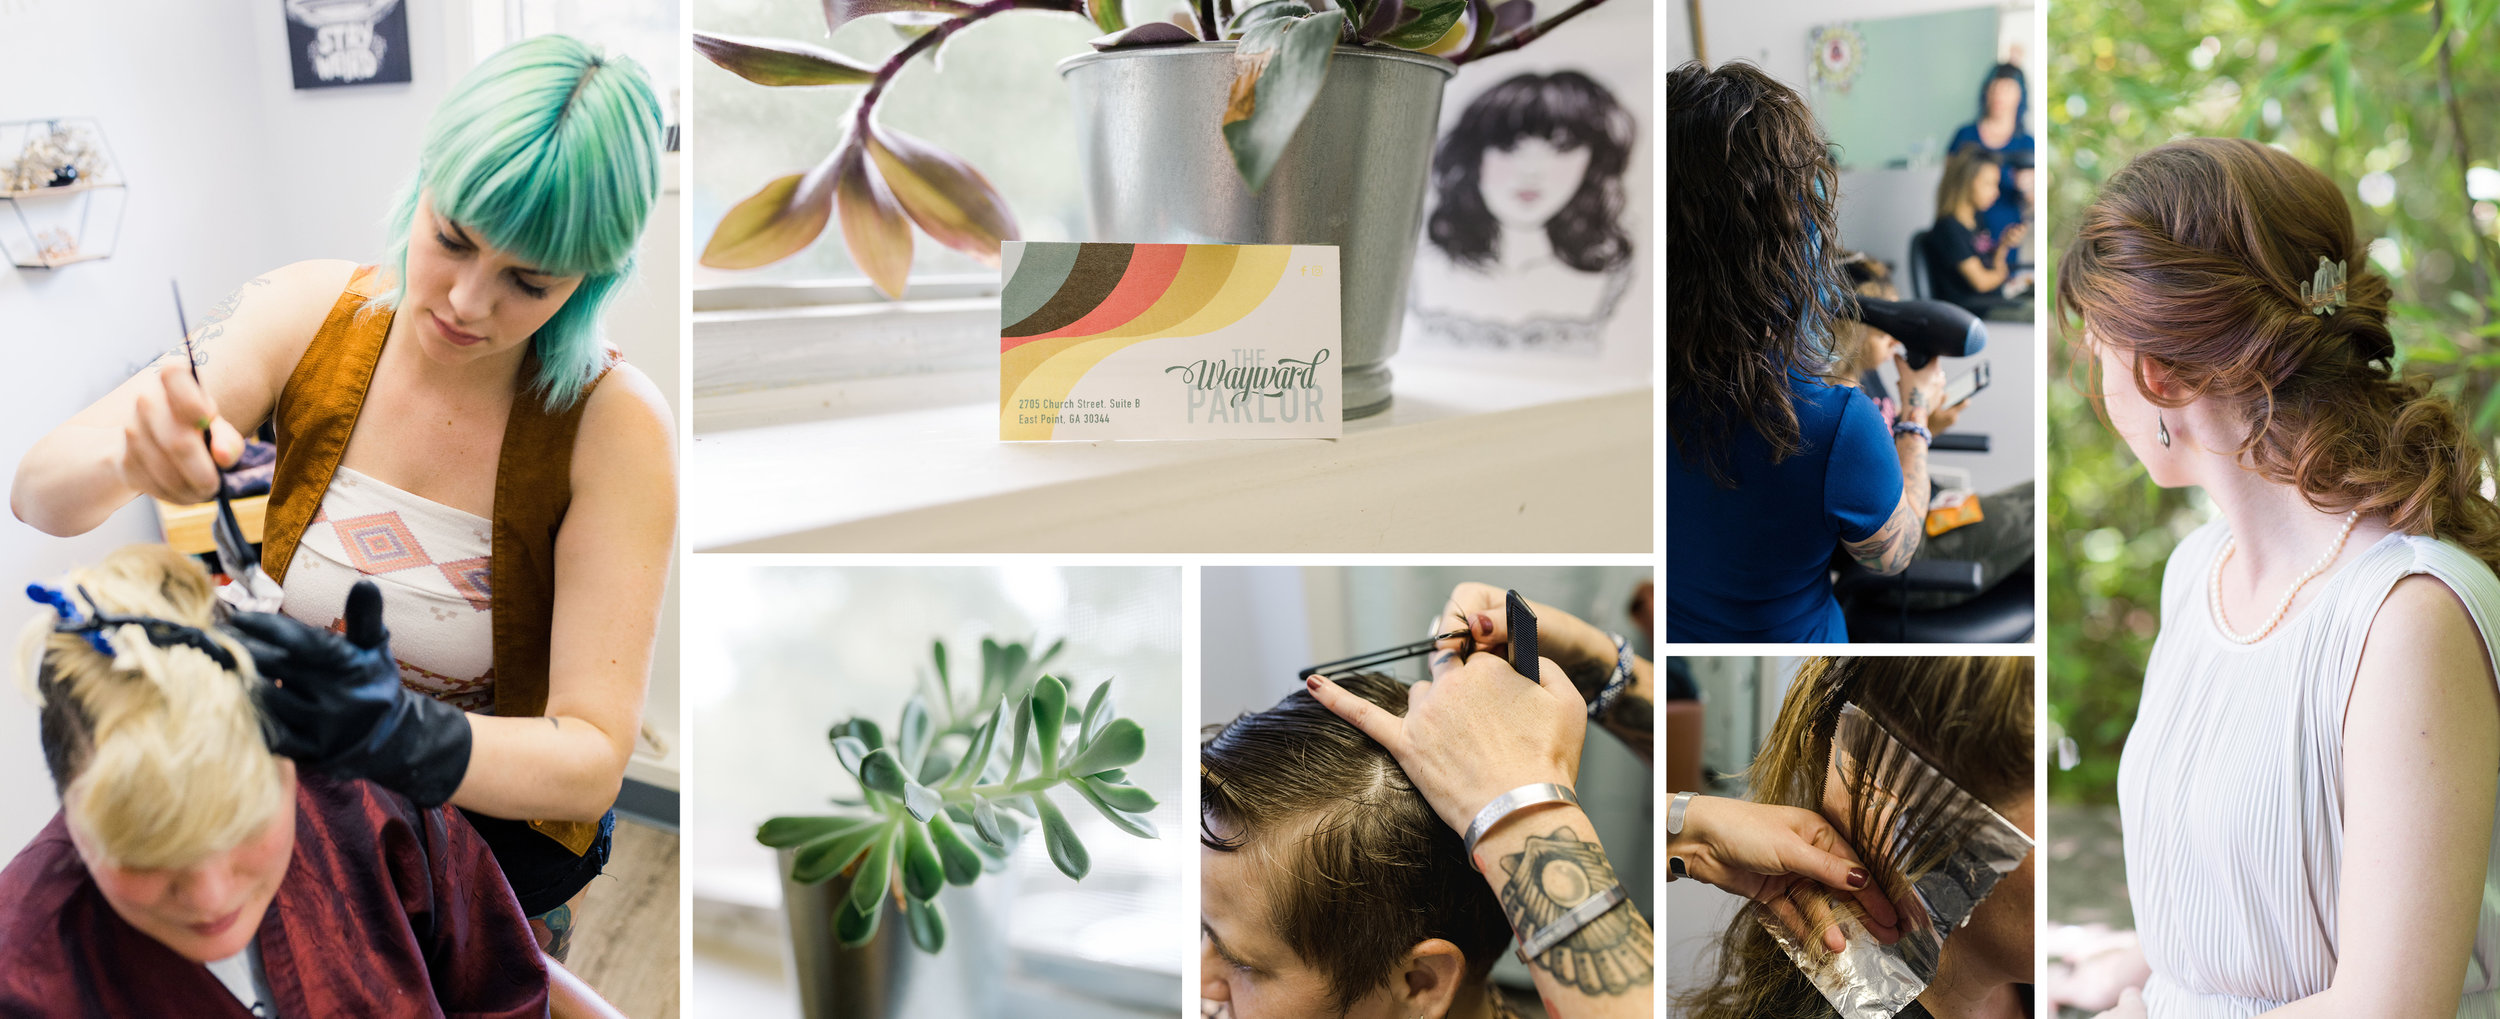 Collage of Salon, Straight Razor, Woman with short hair and bangs, man with hair brushed back and beard, sterilization container, woman with curls, and woman with hair pulled back in curls.